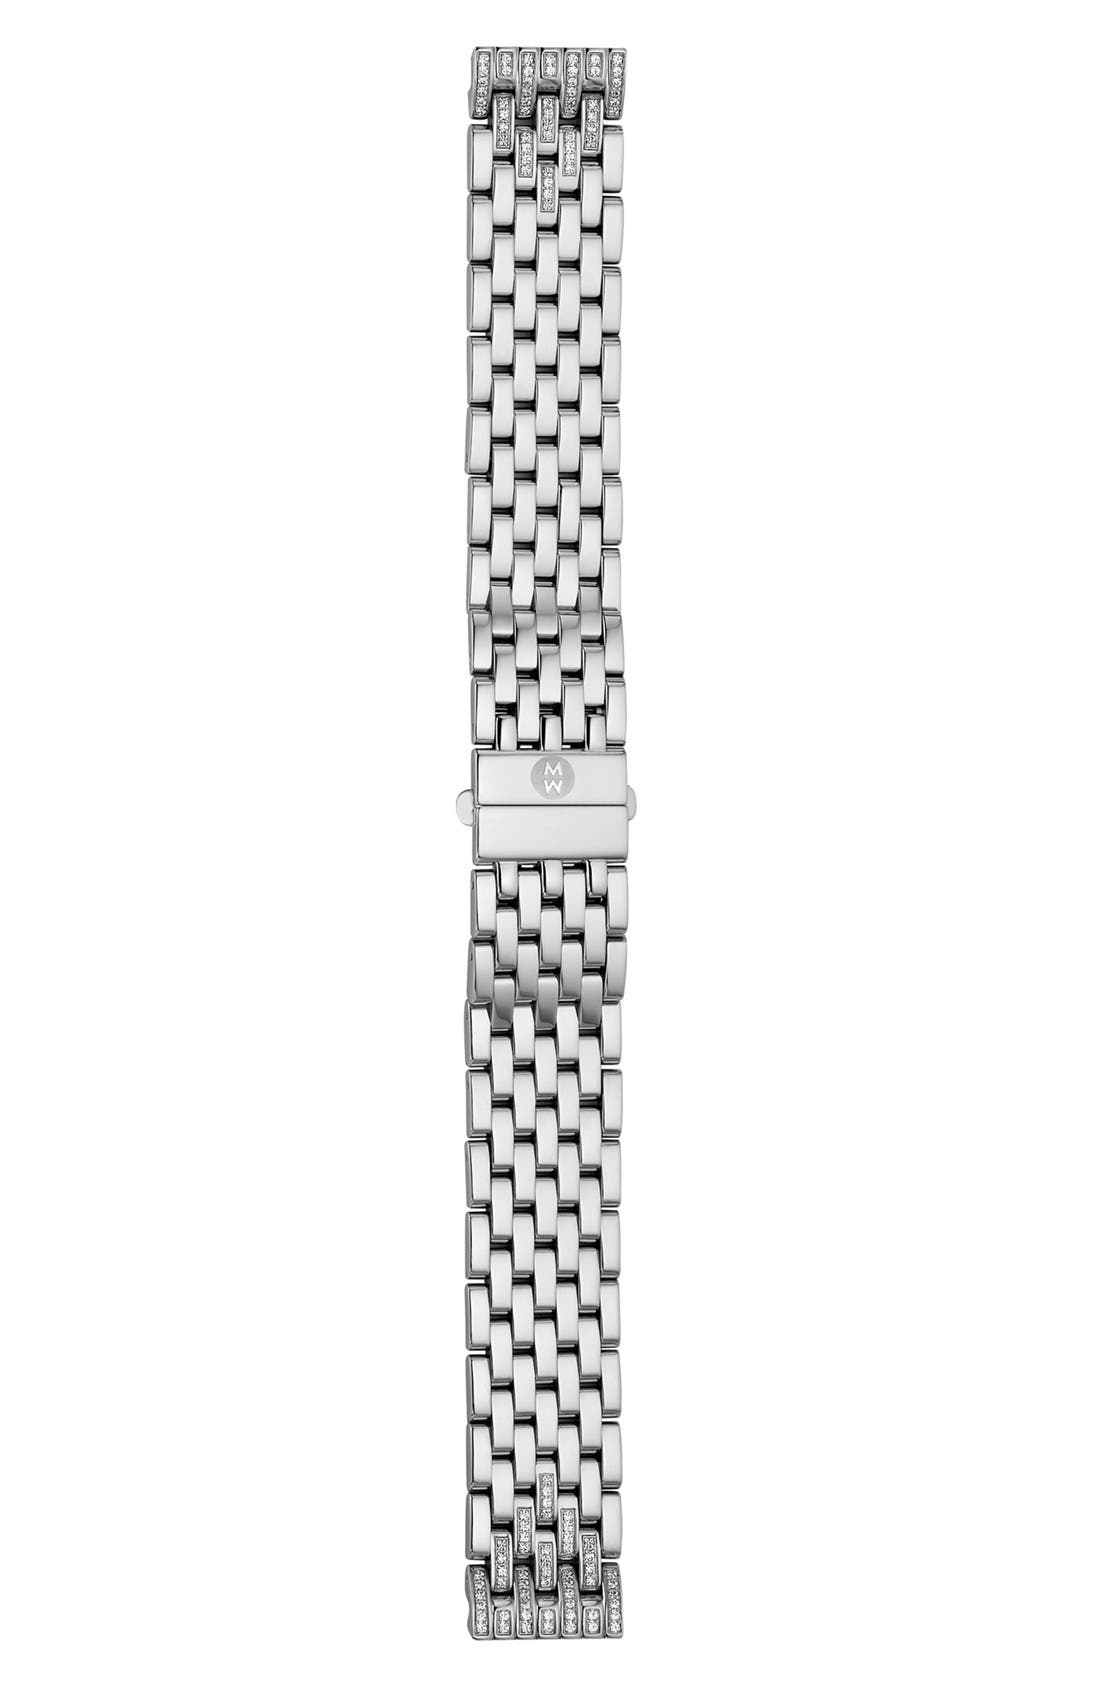 Main Image - MICHELE Deco 16 16mm Diamond Bracelet Watchband